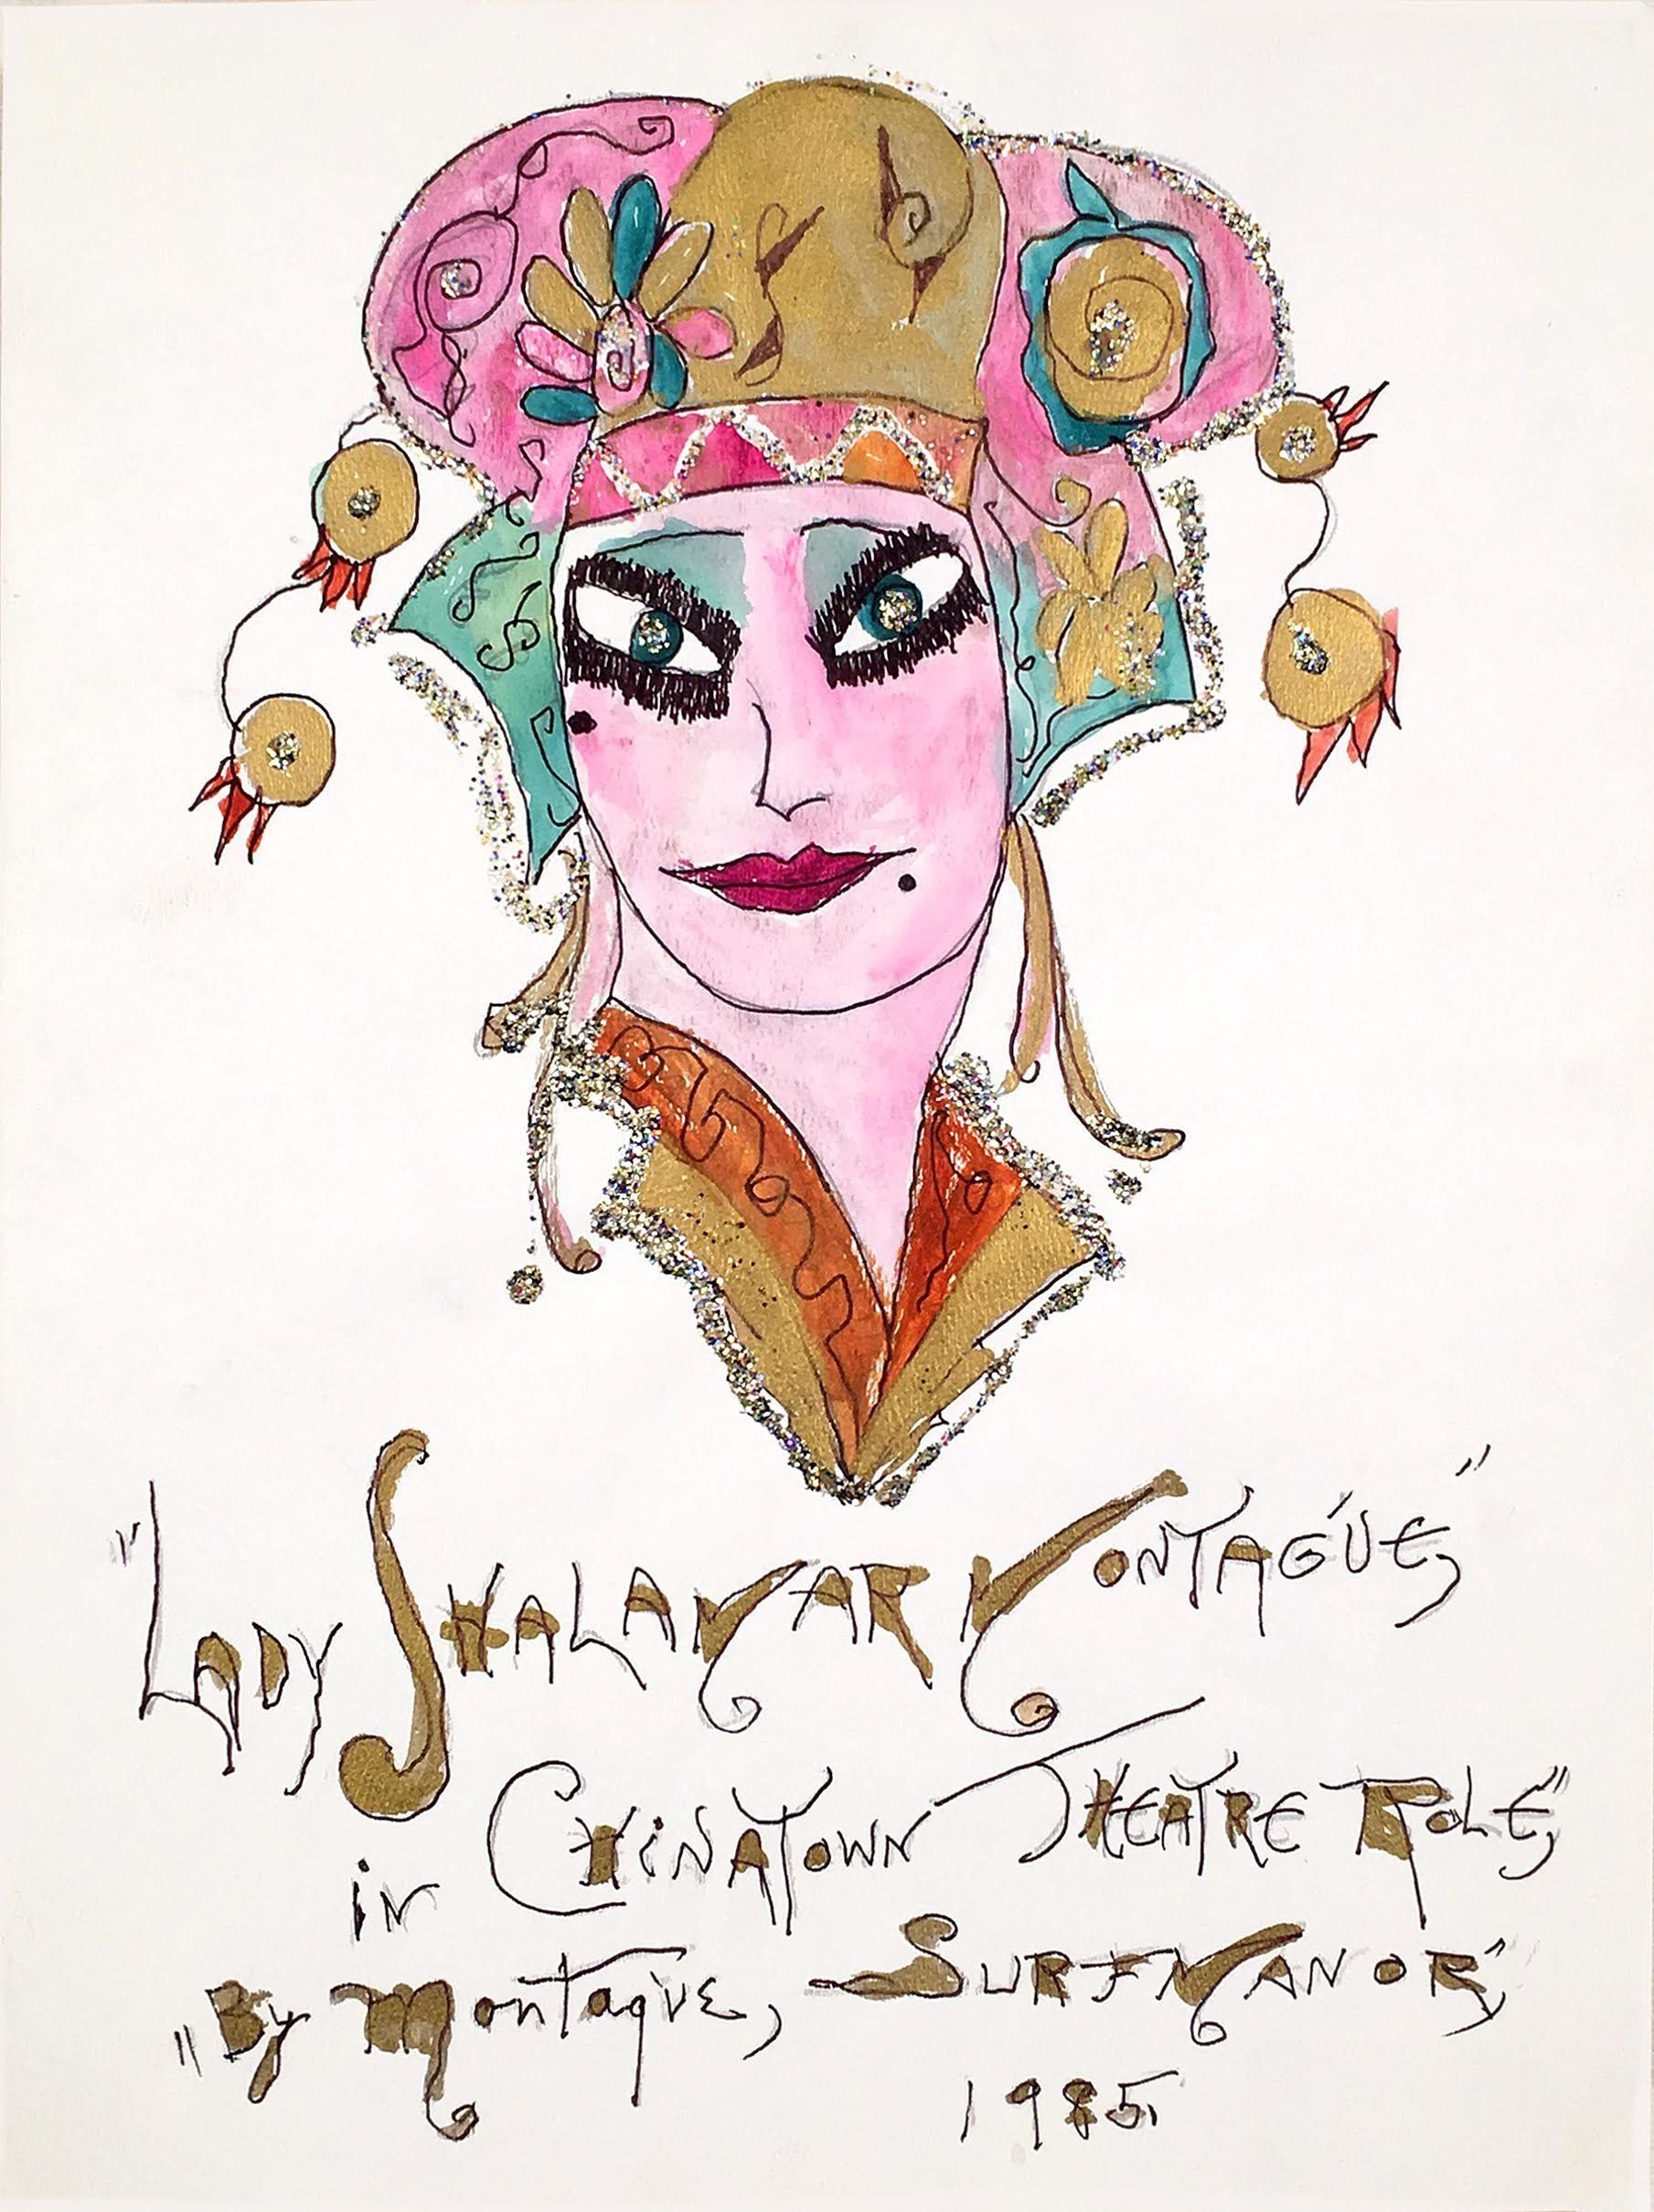 Lady Shalimar Frances Montague Chinatown Theatre Role 1985 watercolor ballpoint glitter on paper